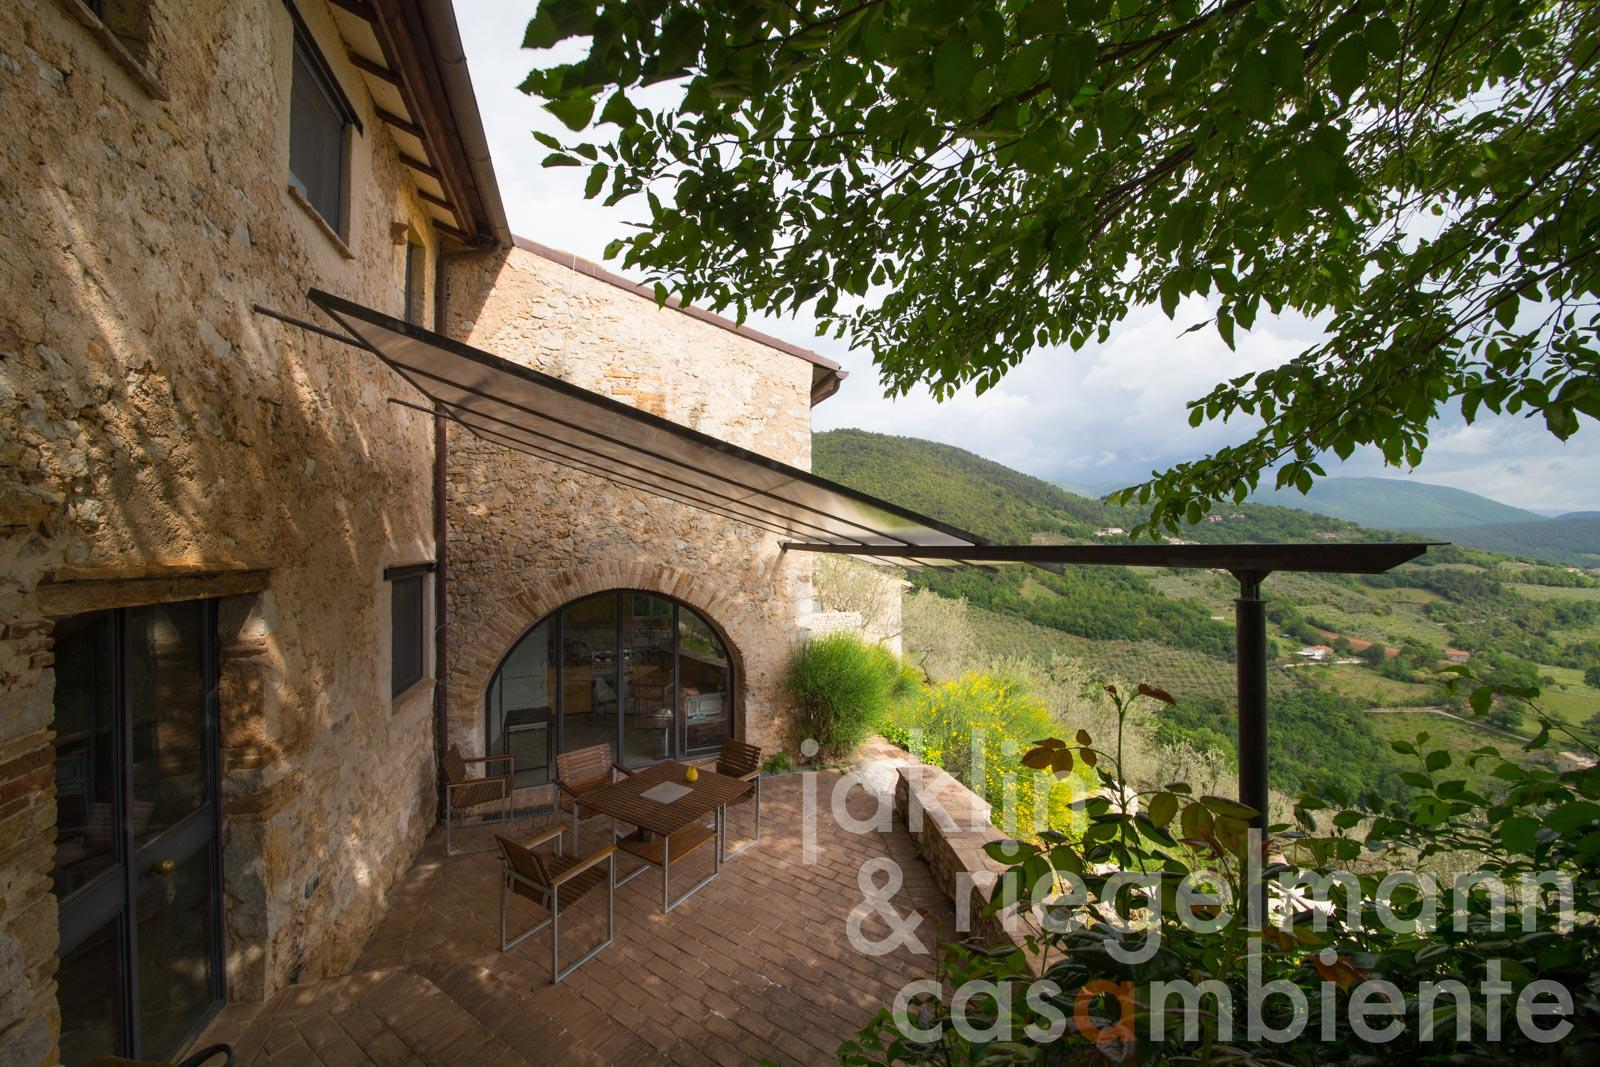 Contemporary architecture in a medieval building with terraces, garden and stunning panoramic views